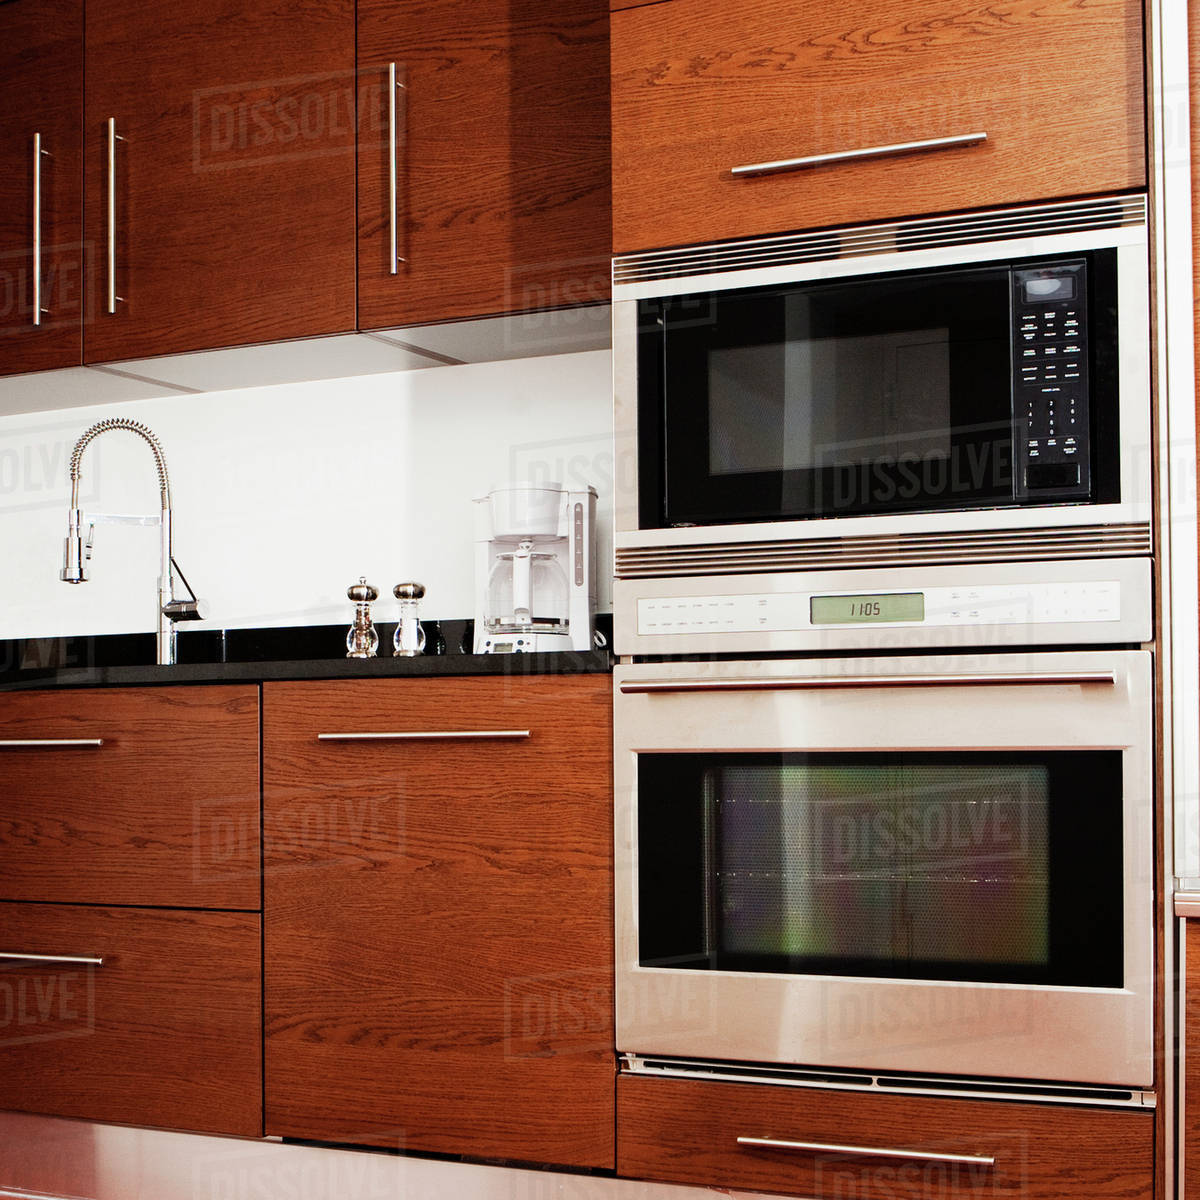 Oven Microwave Cabinets And Sink In Modern Kitchen Stock Photo